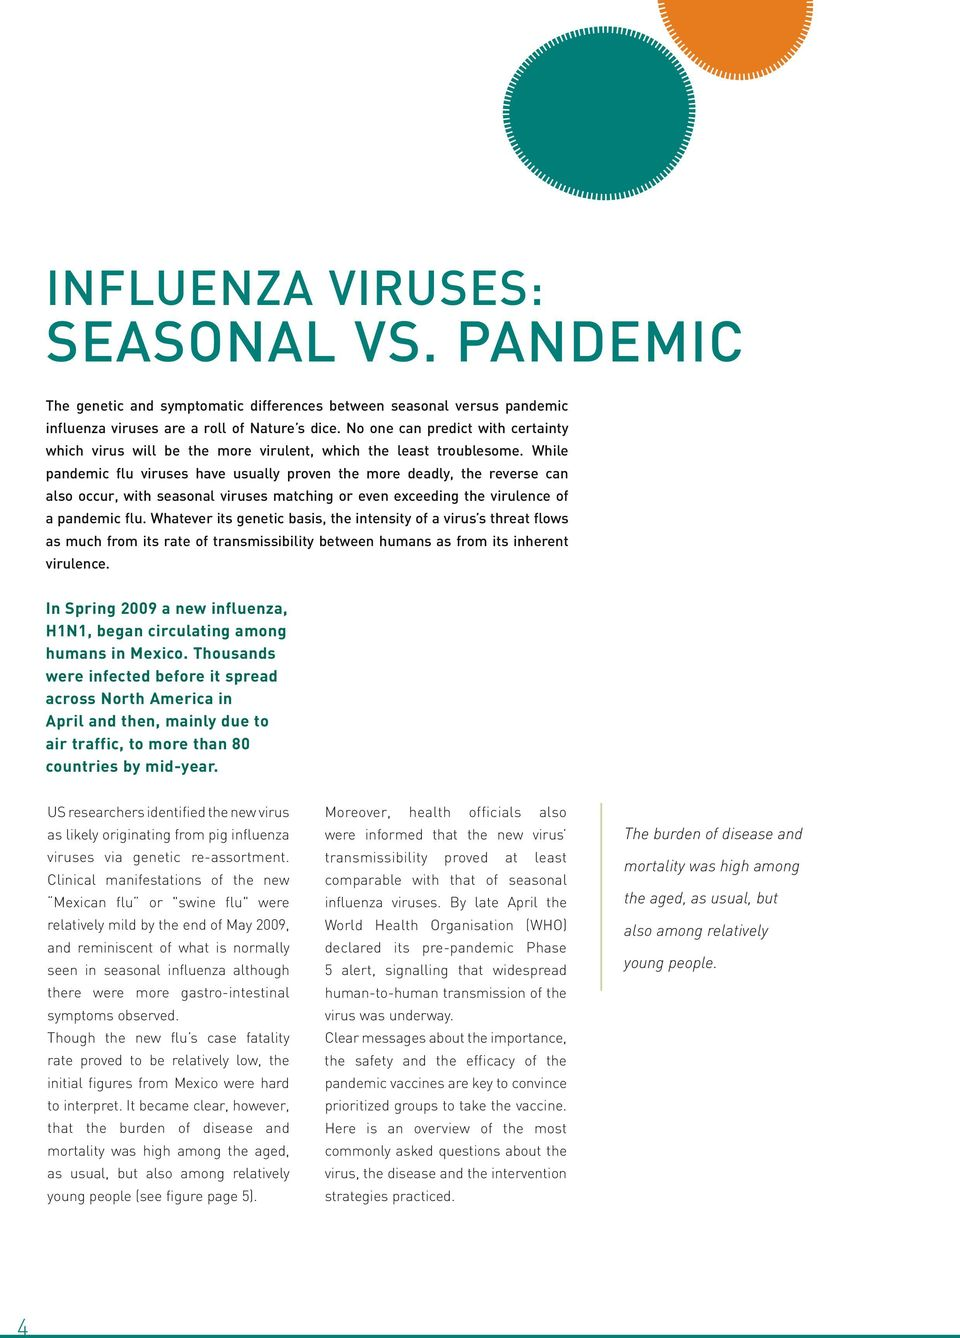 While pandemic flu viruses have usually proven the more deadly, the reverse can also occur, with seasonal viruses matching or even exceeding the virulence of a pandemic flu.